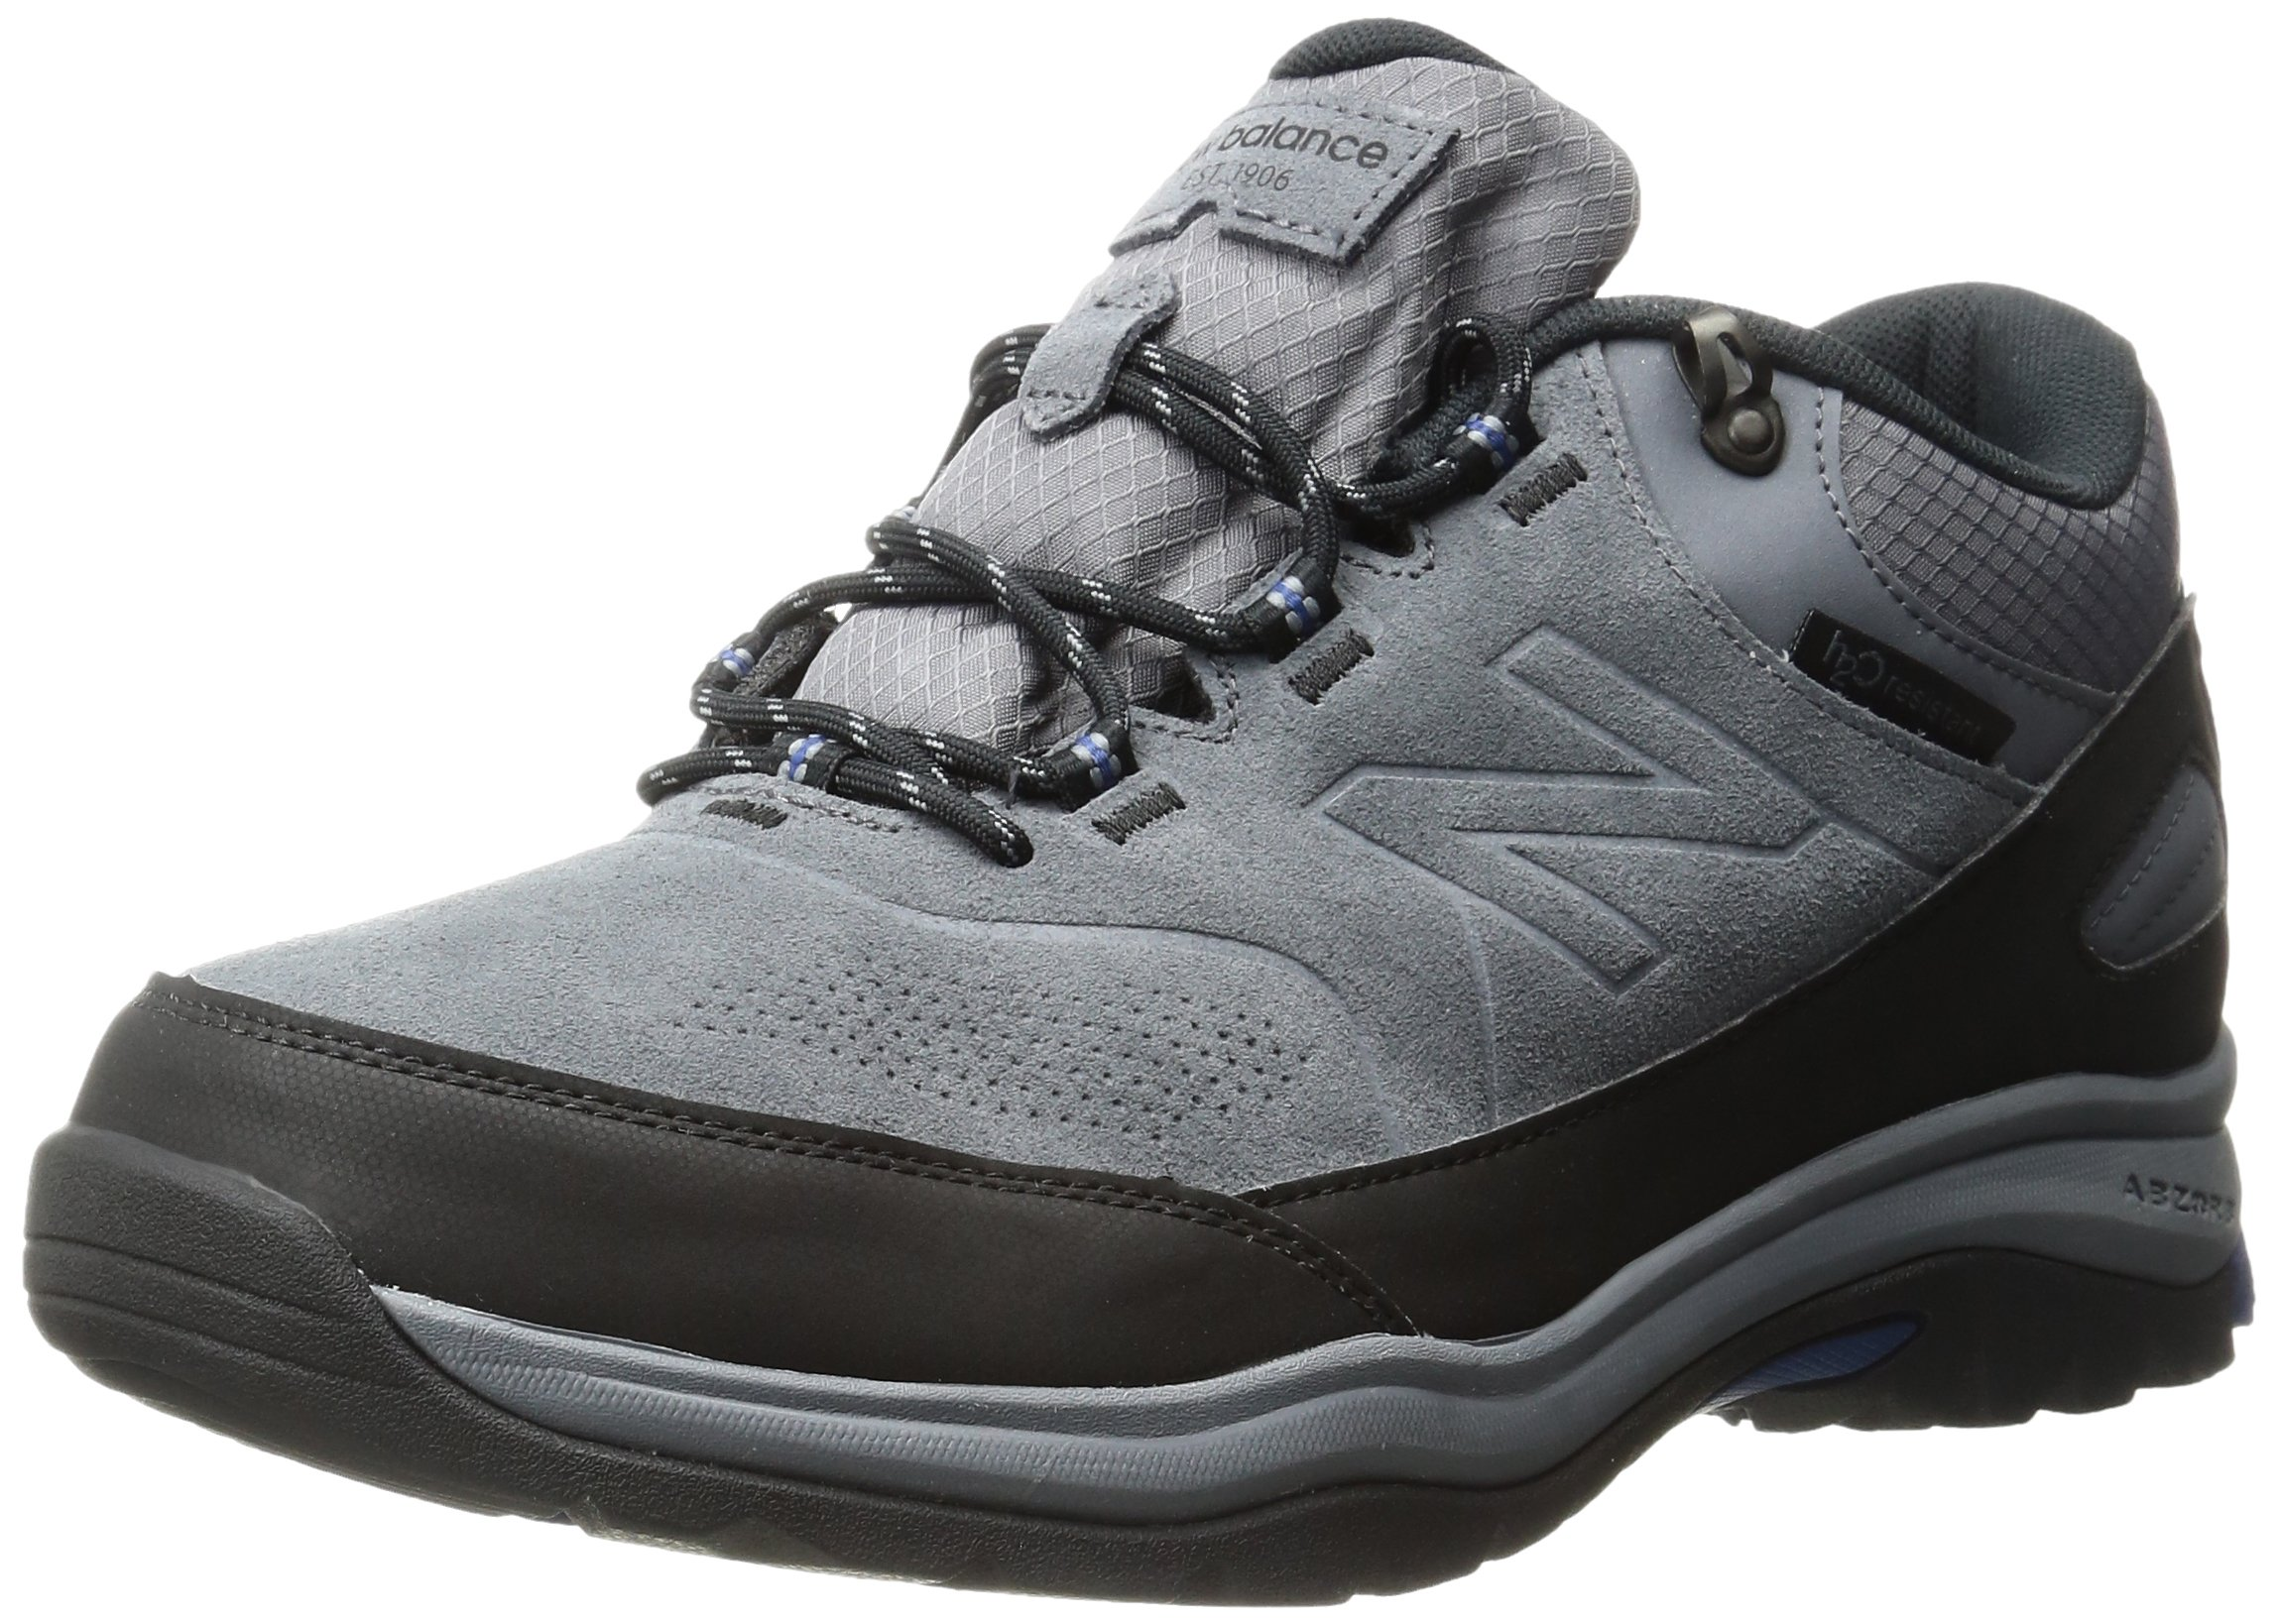 New Balance Men's 779v1 Trail Walking Shoe, Grey/Black, 11.5 D US